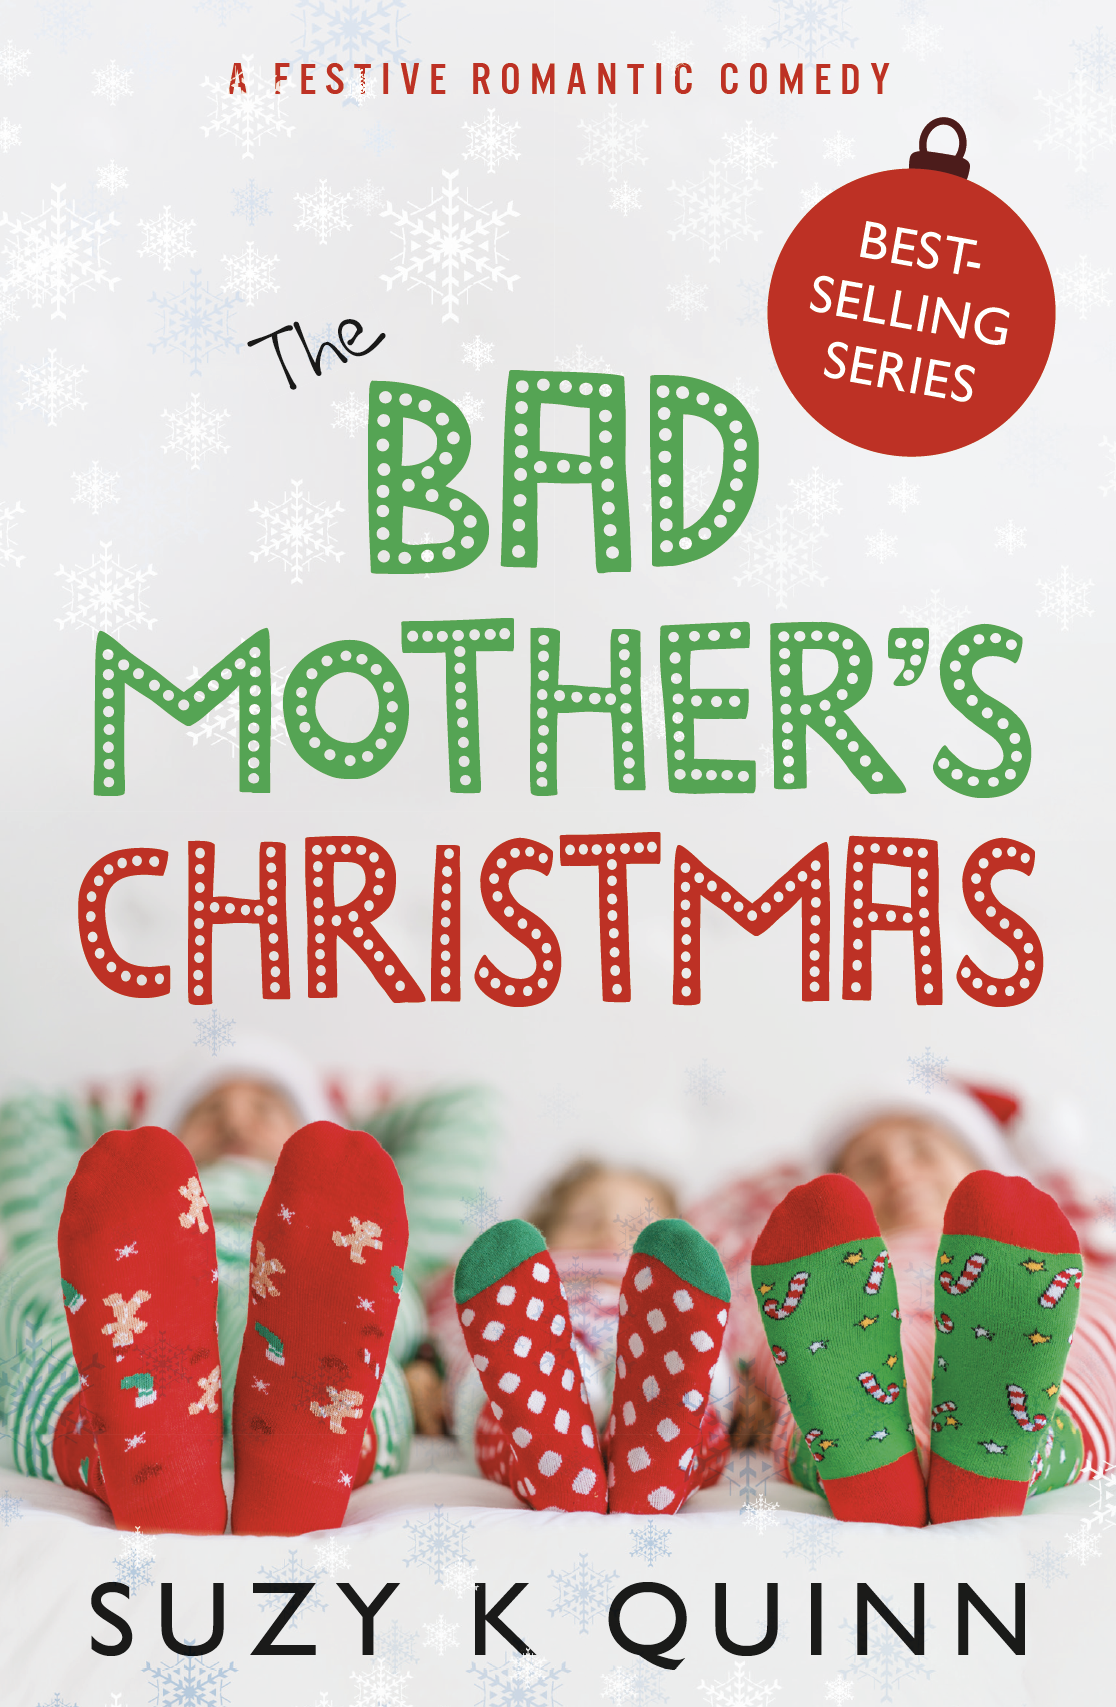 K On Christmas.The Bad Mother S Christmas By Suzy K Quinn Eye Books